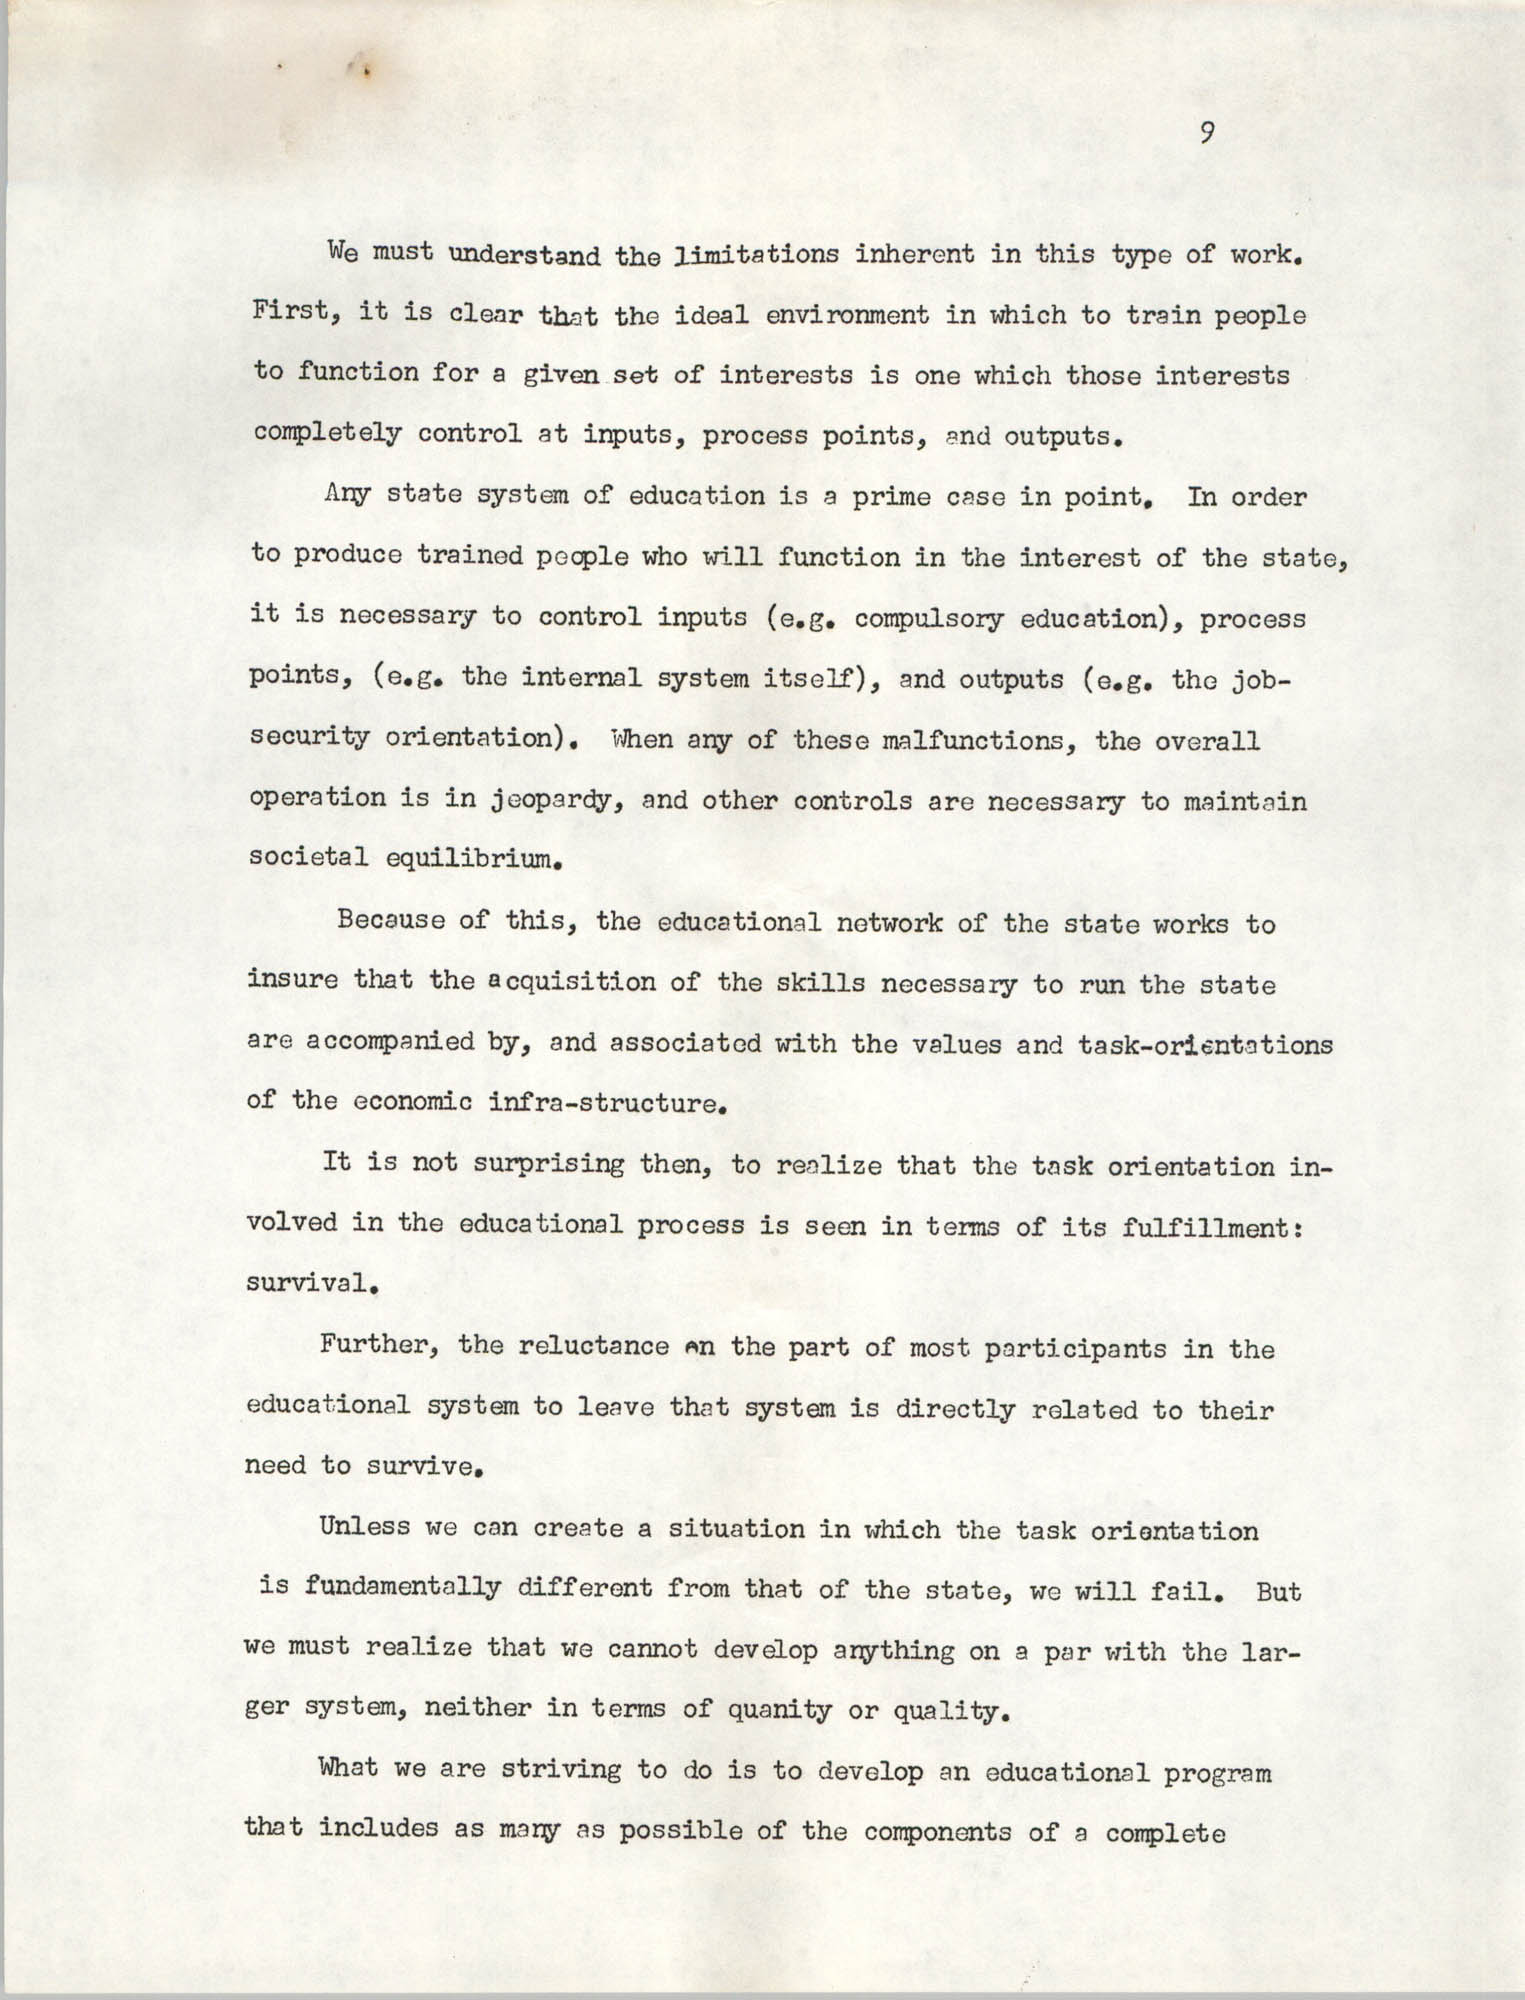 A Proposal for the Development of a Training Institute, Page 9